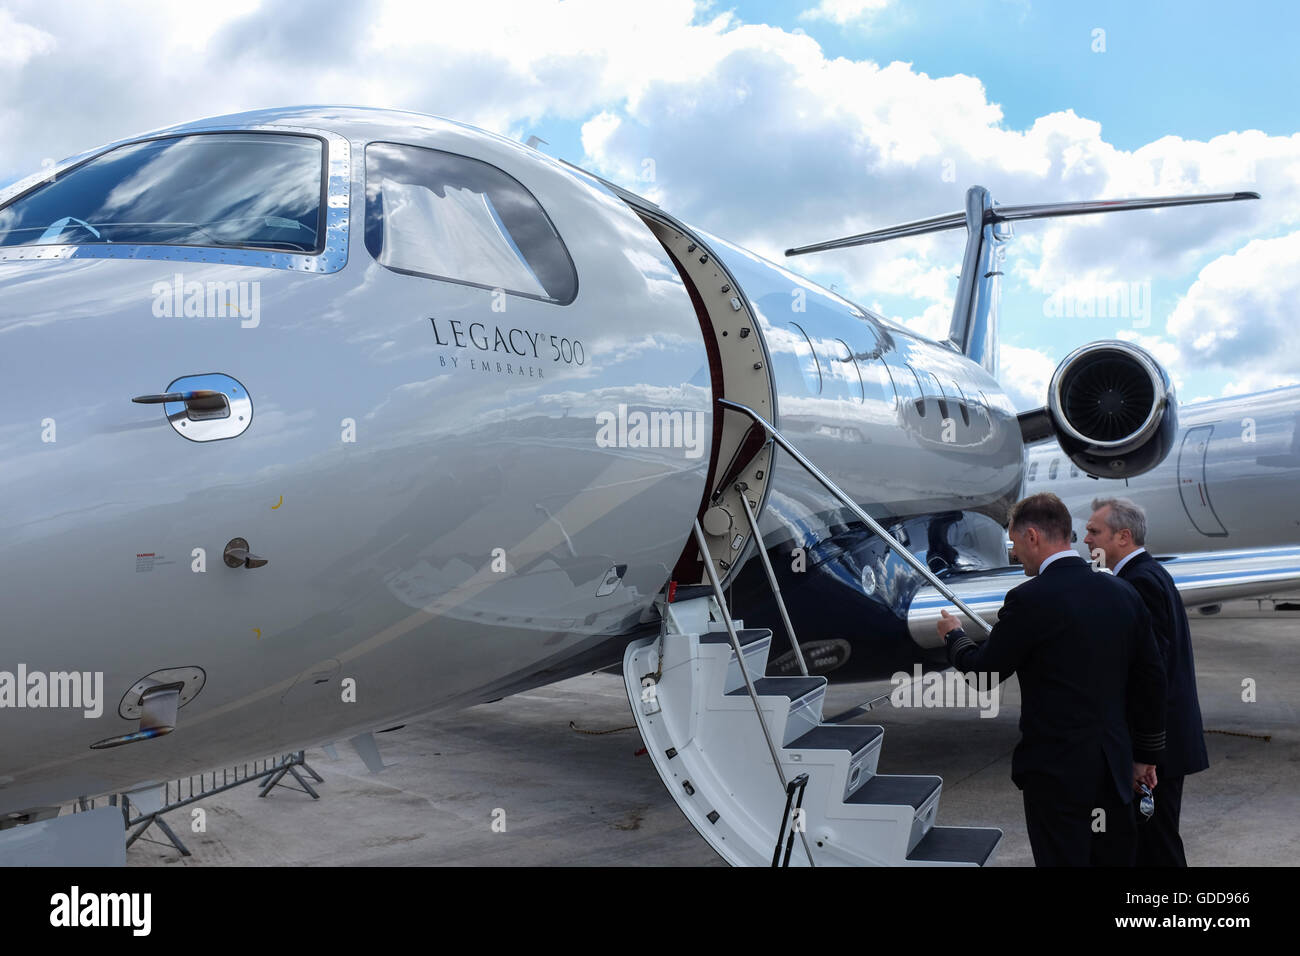 Il Legacy 500 business jet da Embraer. Immagini Stock